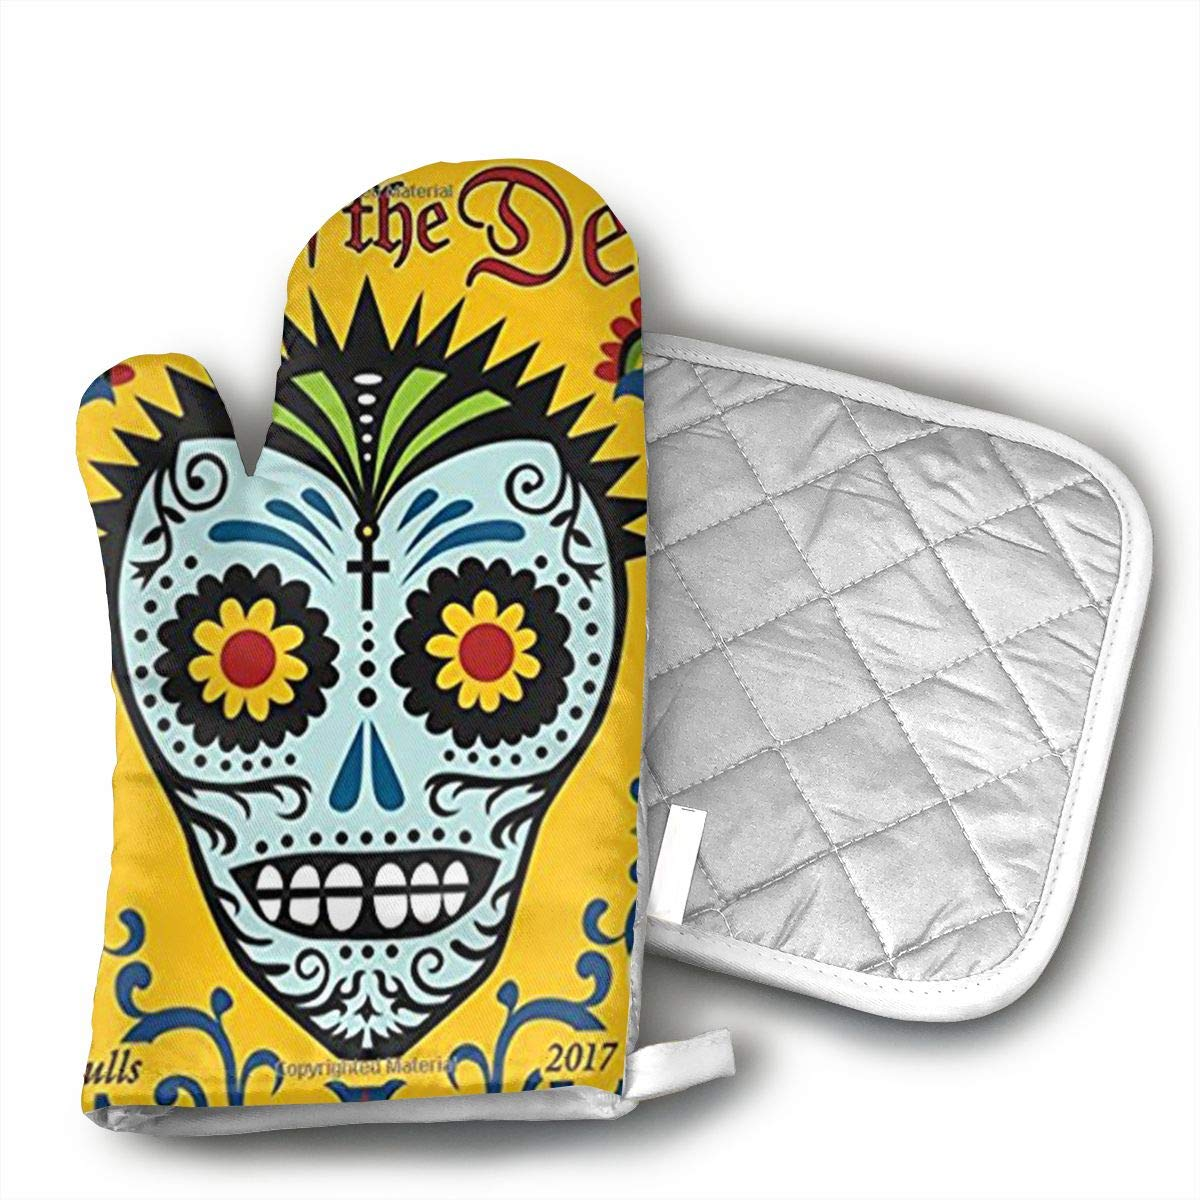 GUYDHL Unisex Oven Mitt and Pot Holder for Day of The Dead 2017 Wall Calendar Sugar Skulls - 2 Pair